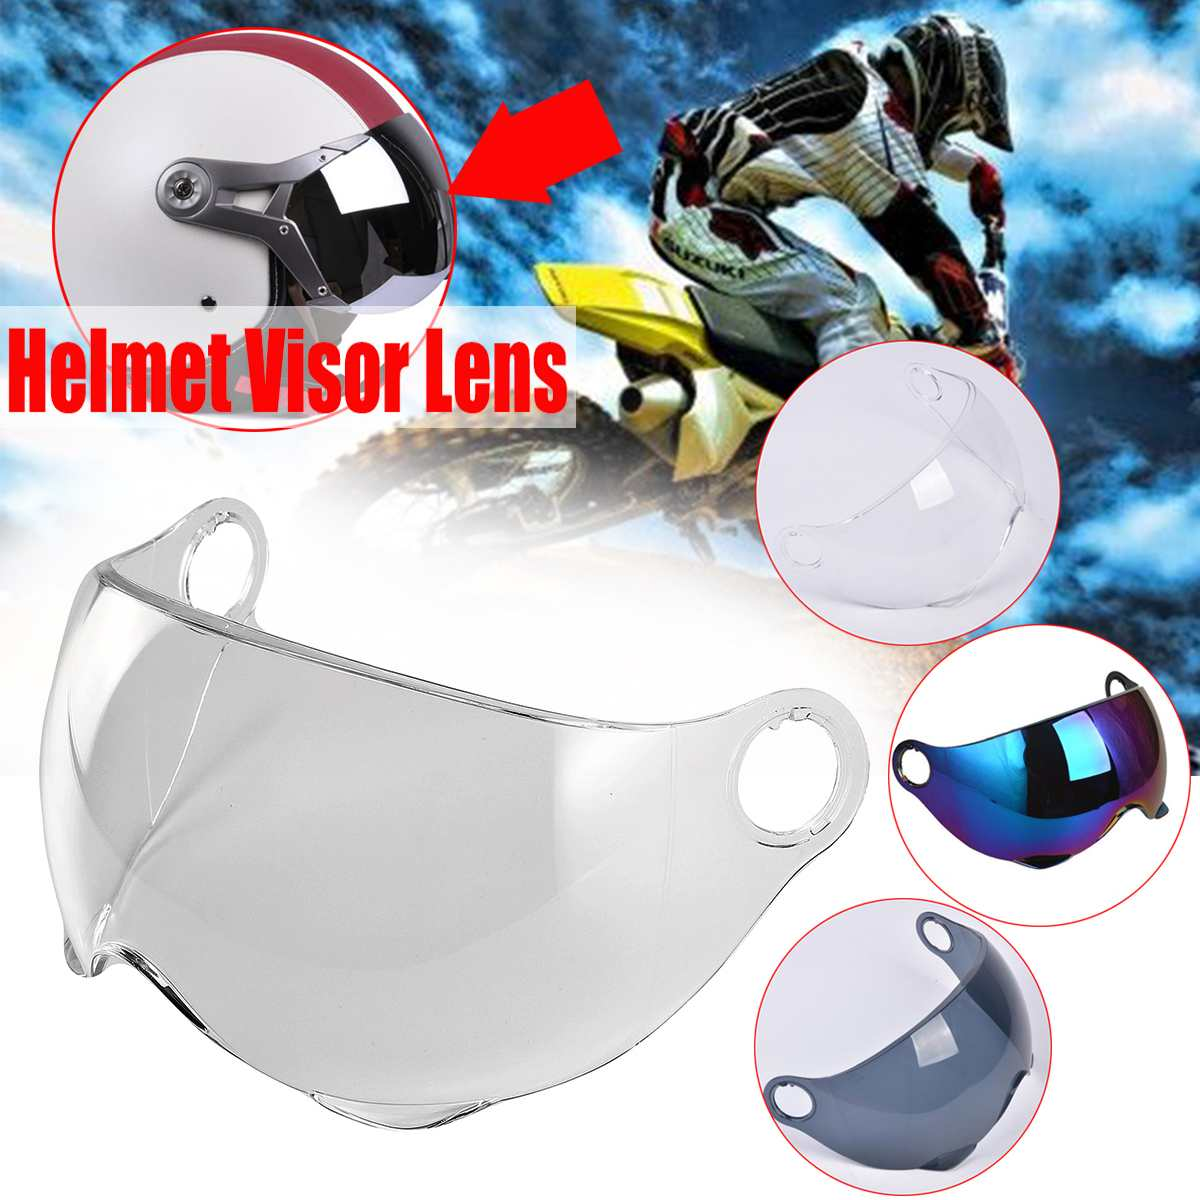 Outdoor Face Mask Cold Weather Windproof Anti-Fog Riding Motorbike Helmet Glasses Flower Rovive Motorcycle Helmet Riding Goggles Glasses